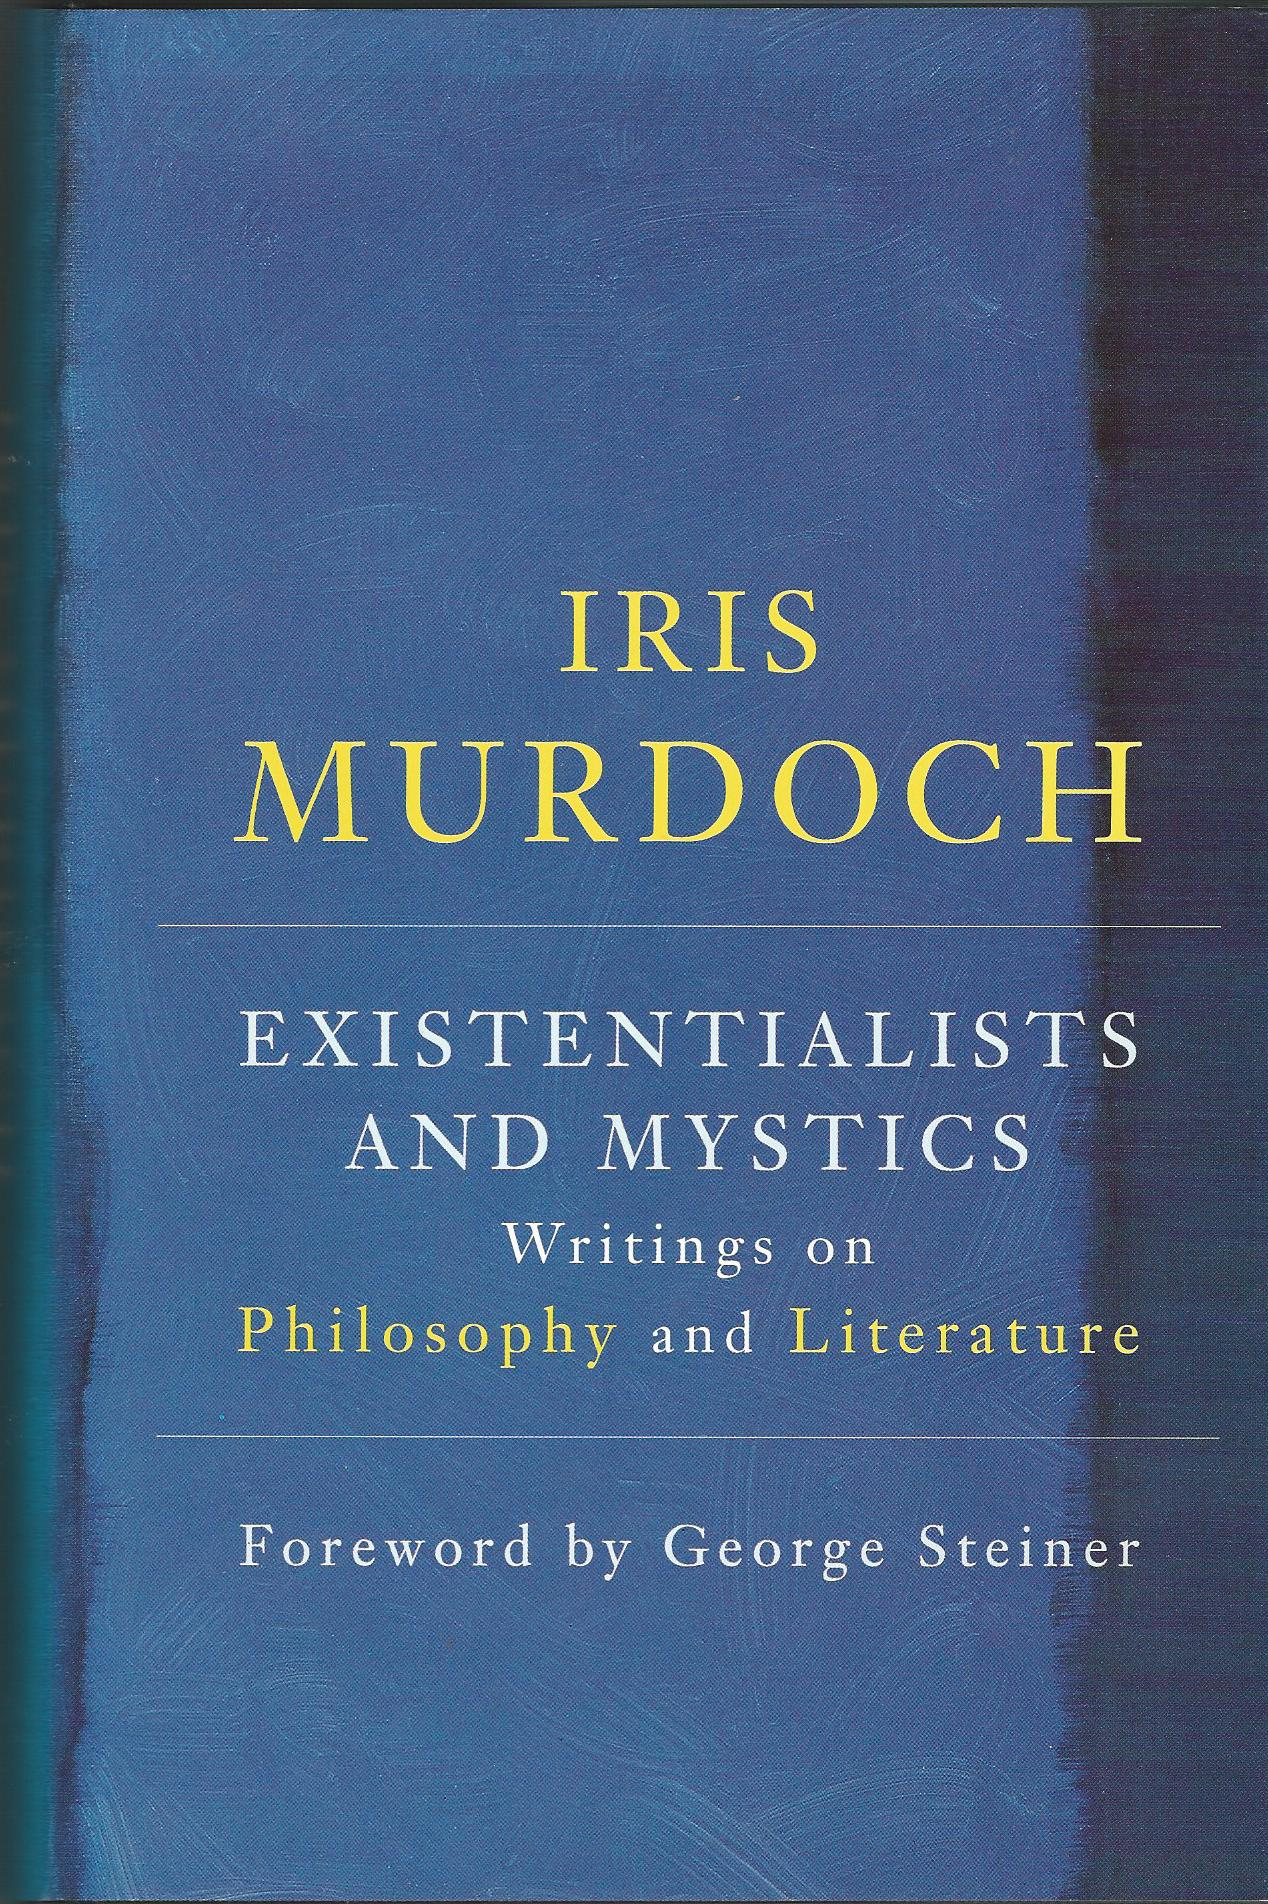 Image for Existentialists And Mystics: Writings on Philosophy and Literature